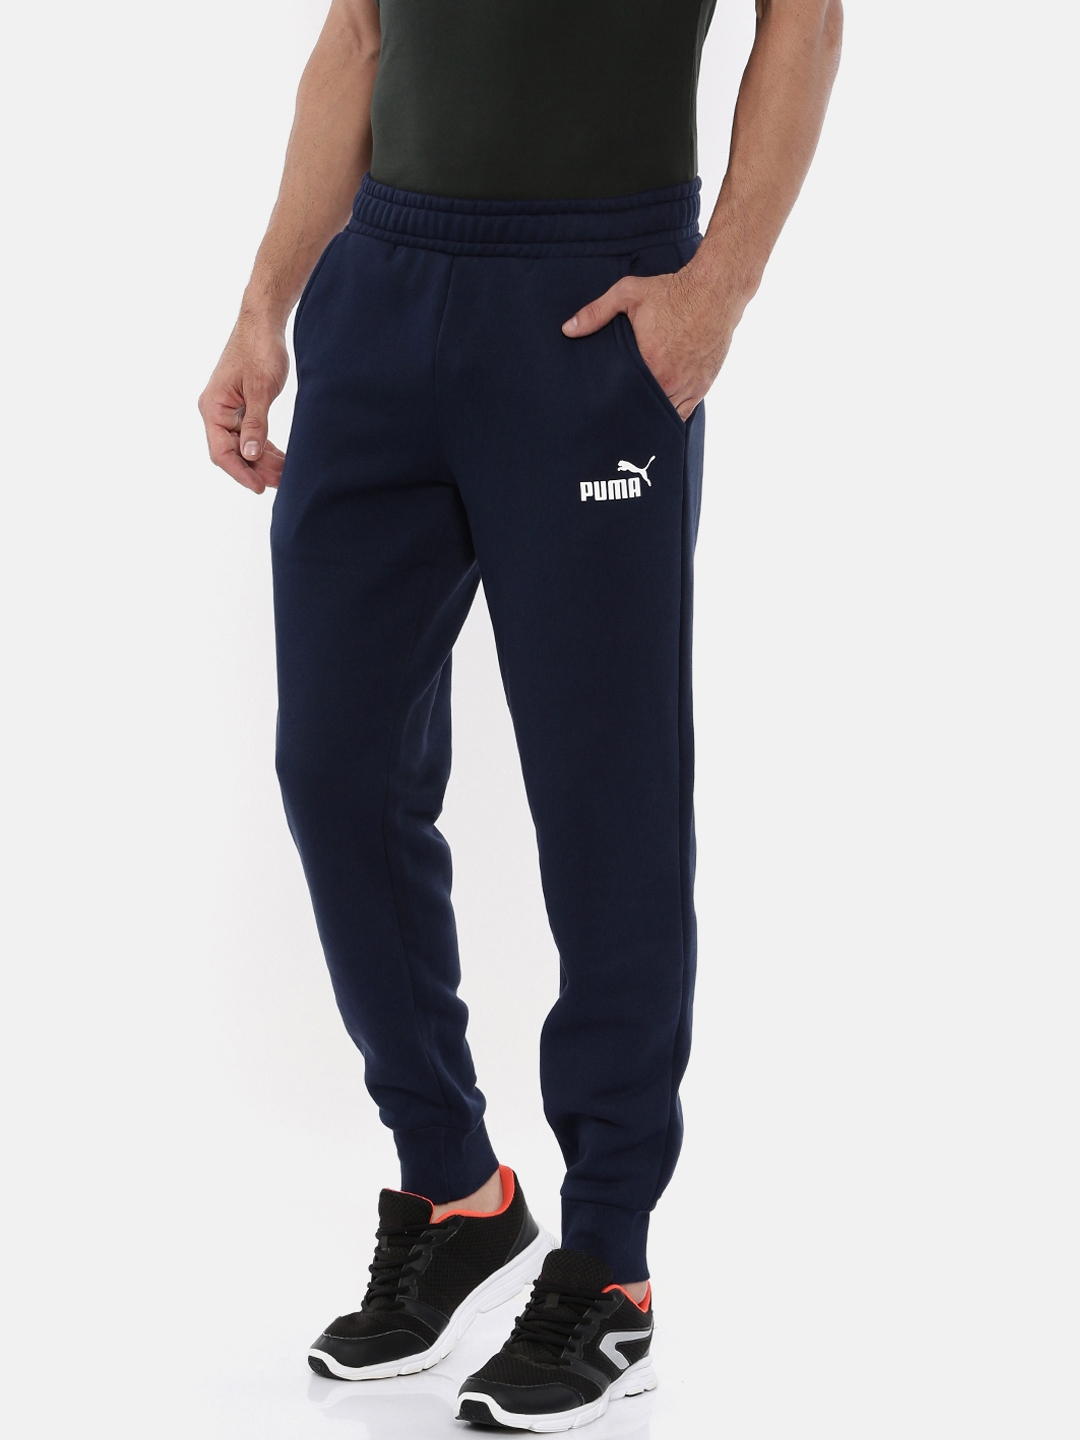 a4301d35a Buy Puma Men Navy Blue Solid Regular Fit ESS Logo Pants FL Sports ...